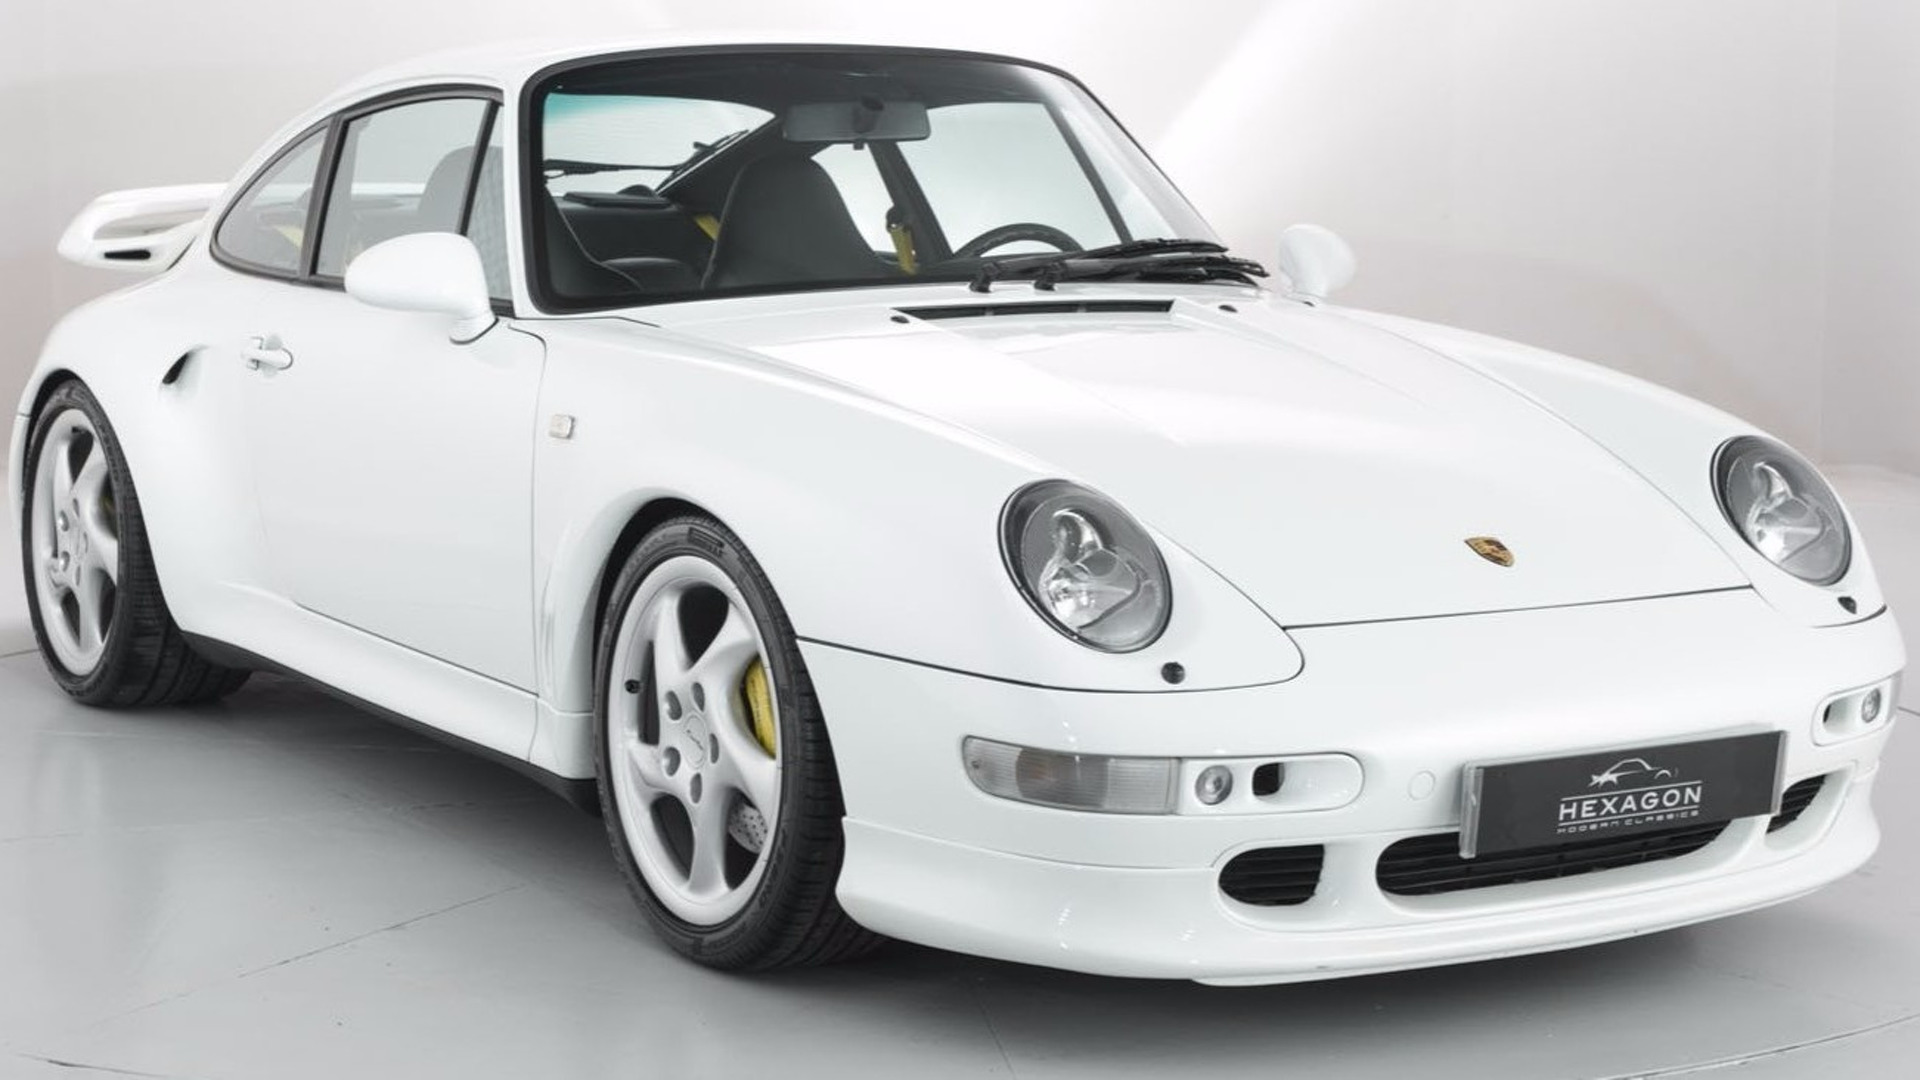 Add A Rare Porsche 993 Turbo X50 To Your Collection For GBP200k